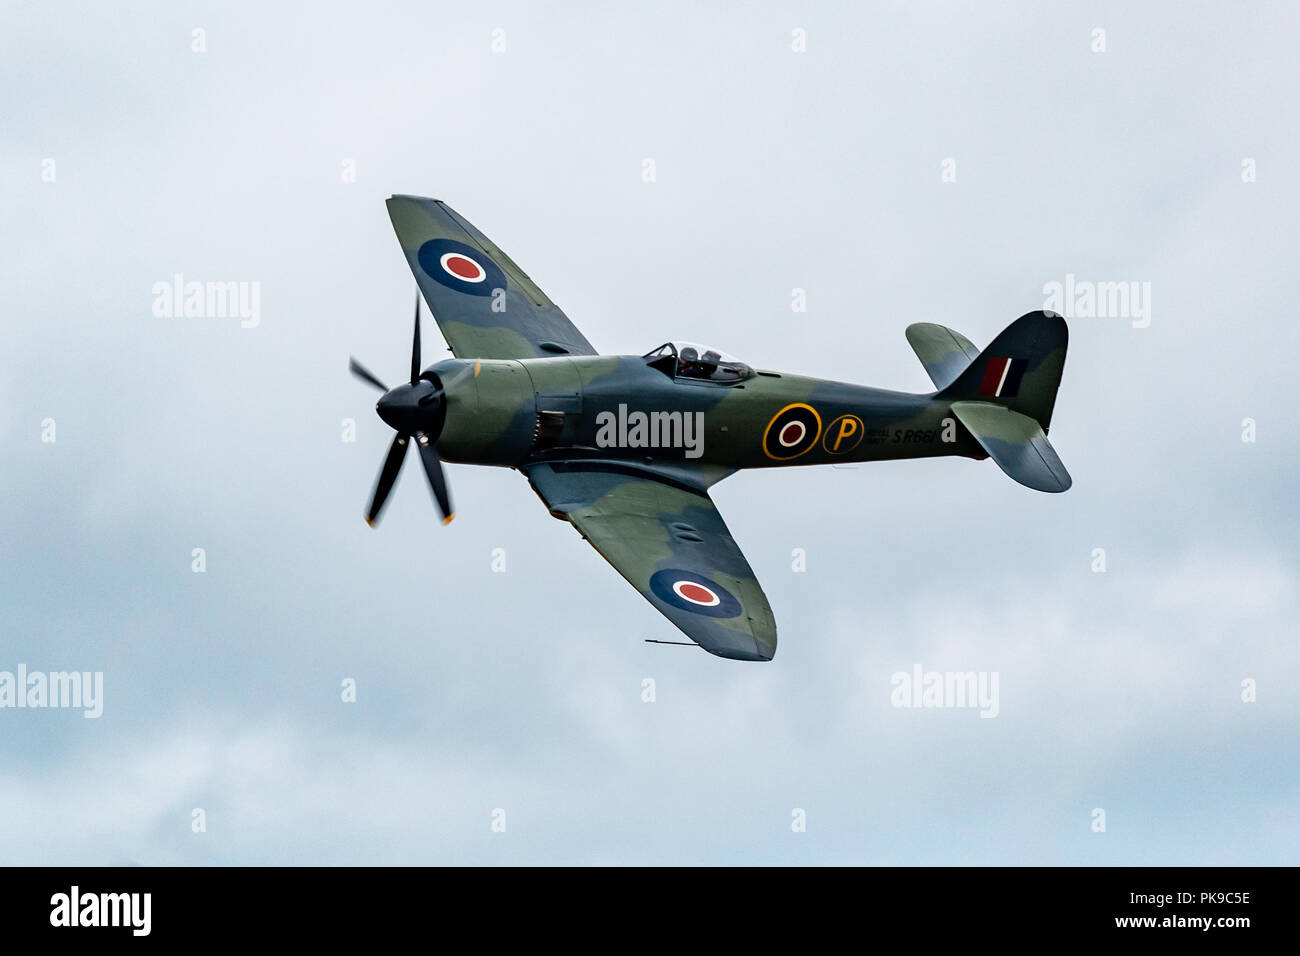 A Hawker Sea Fury carrier borne fighter-bomber of the Fleet Air Arm. One of the fastest piston powered aircraft, seeing service in the Korean war - Stock Image